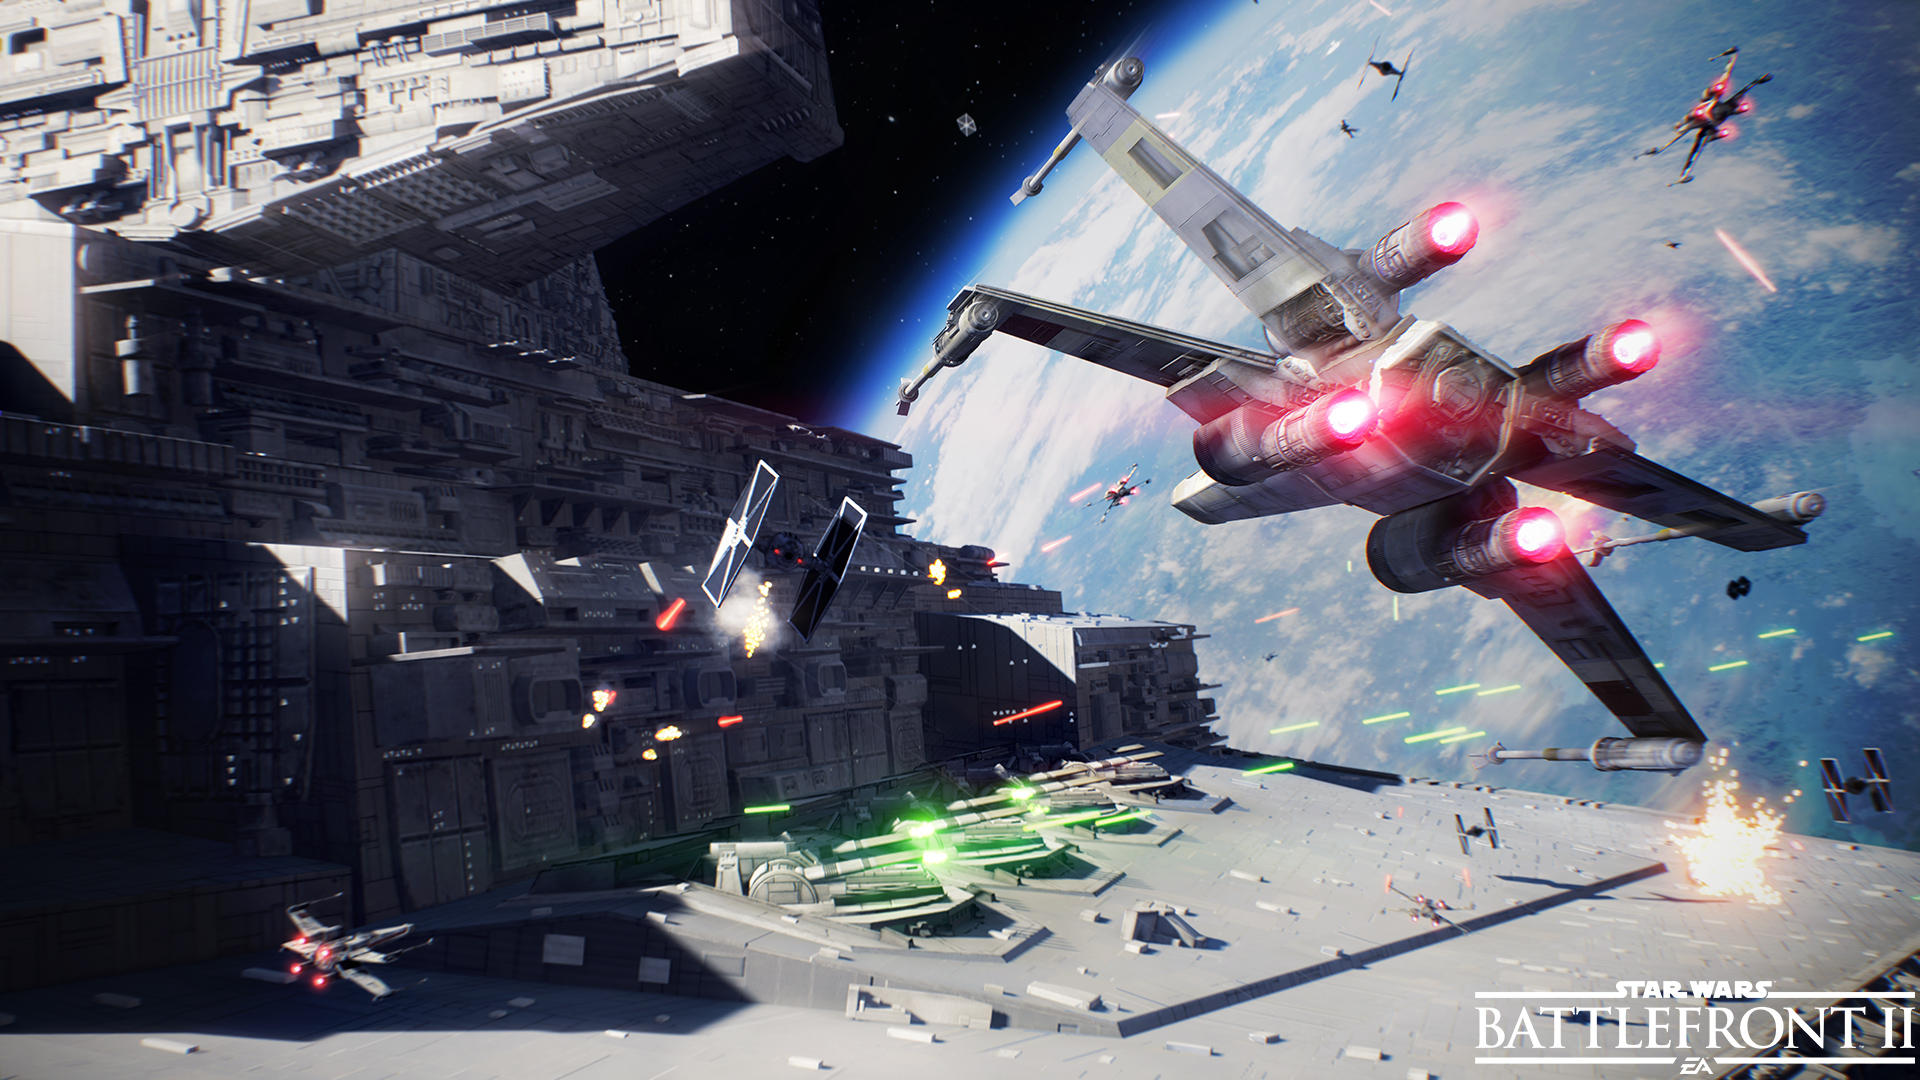 Star wars battlefront iii (3) xbox 360 build 70217 leaked for.